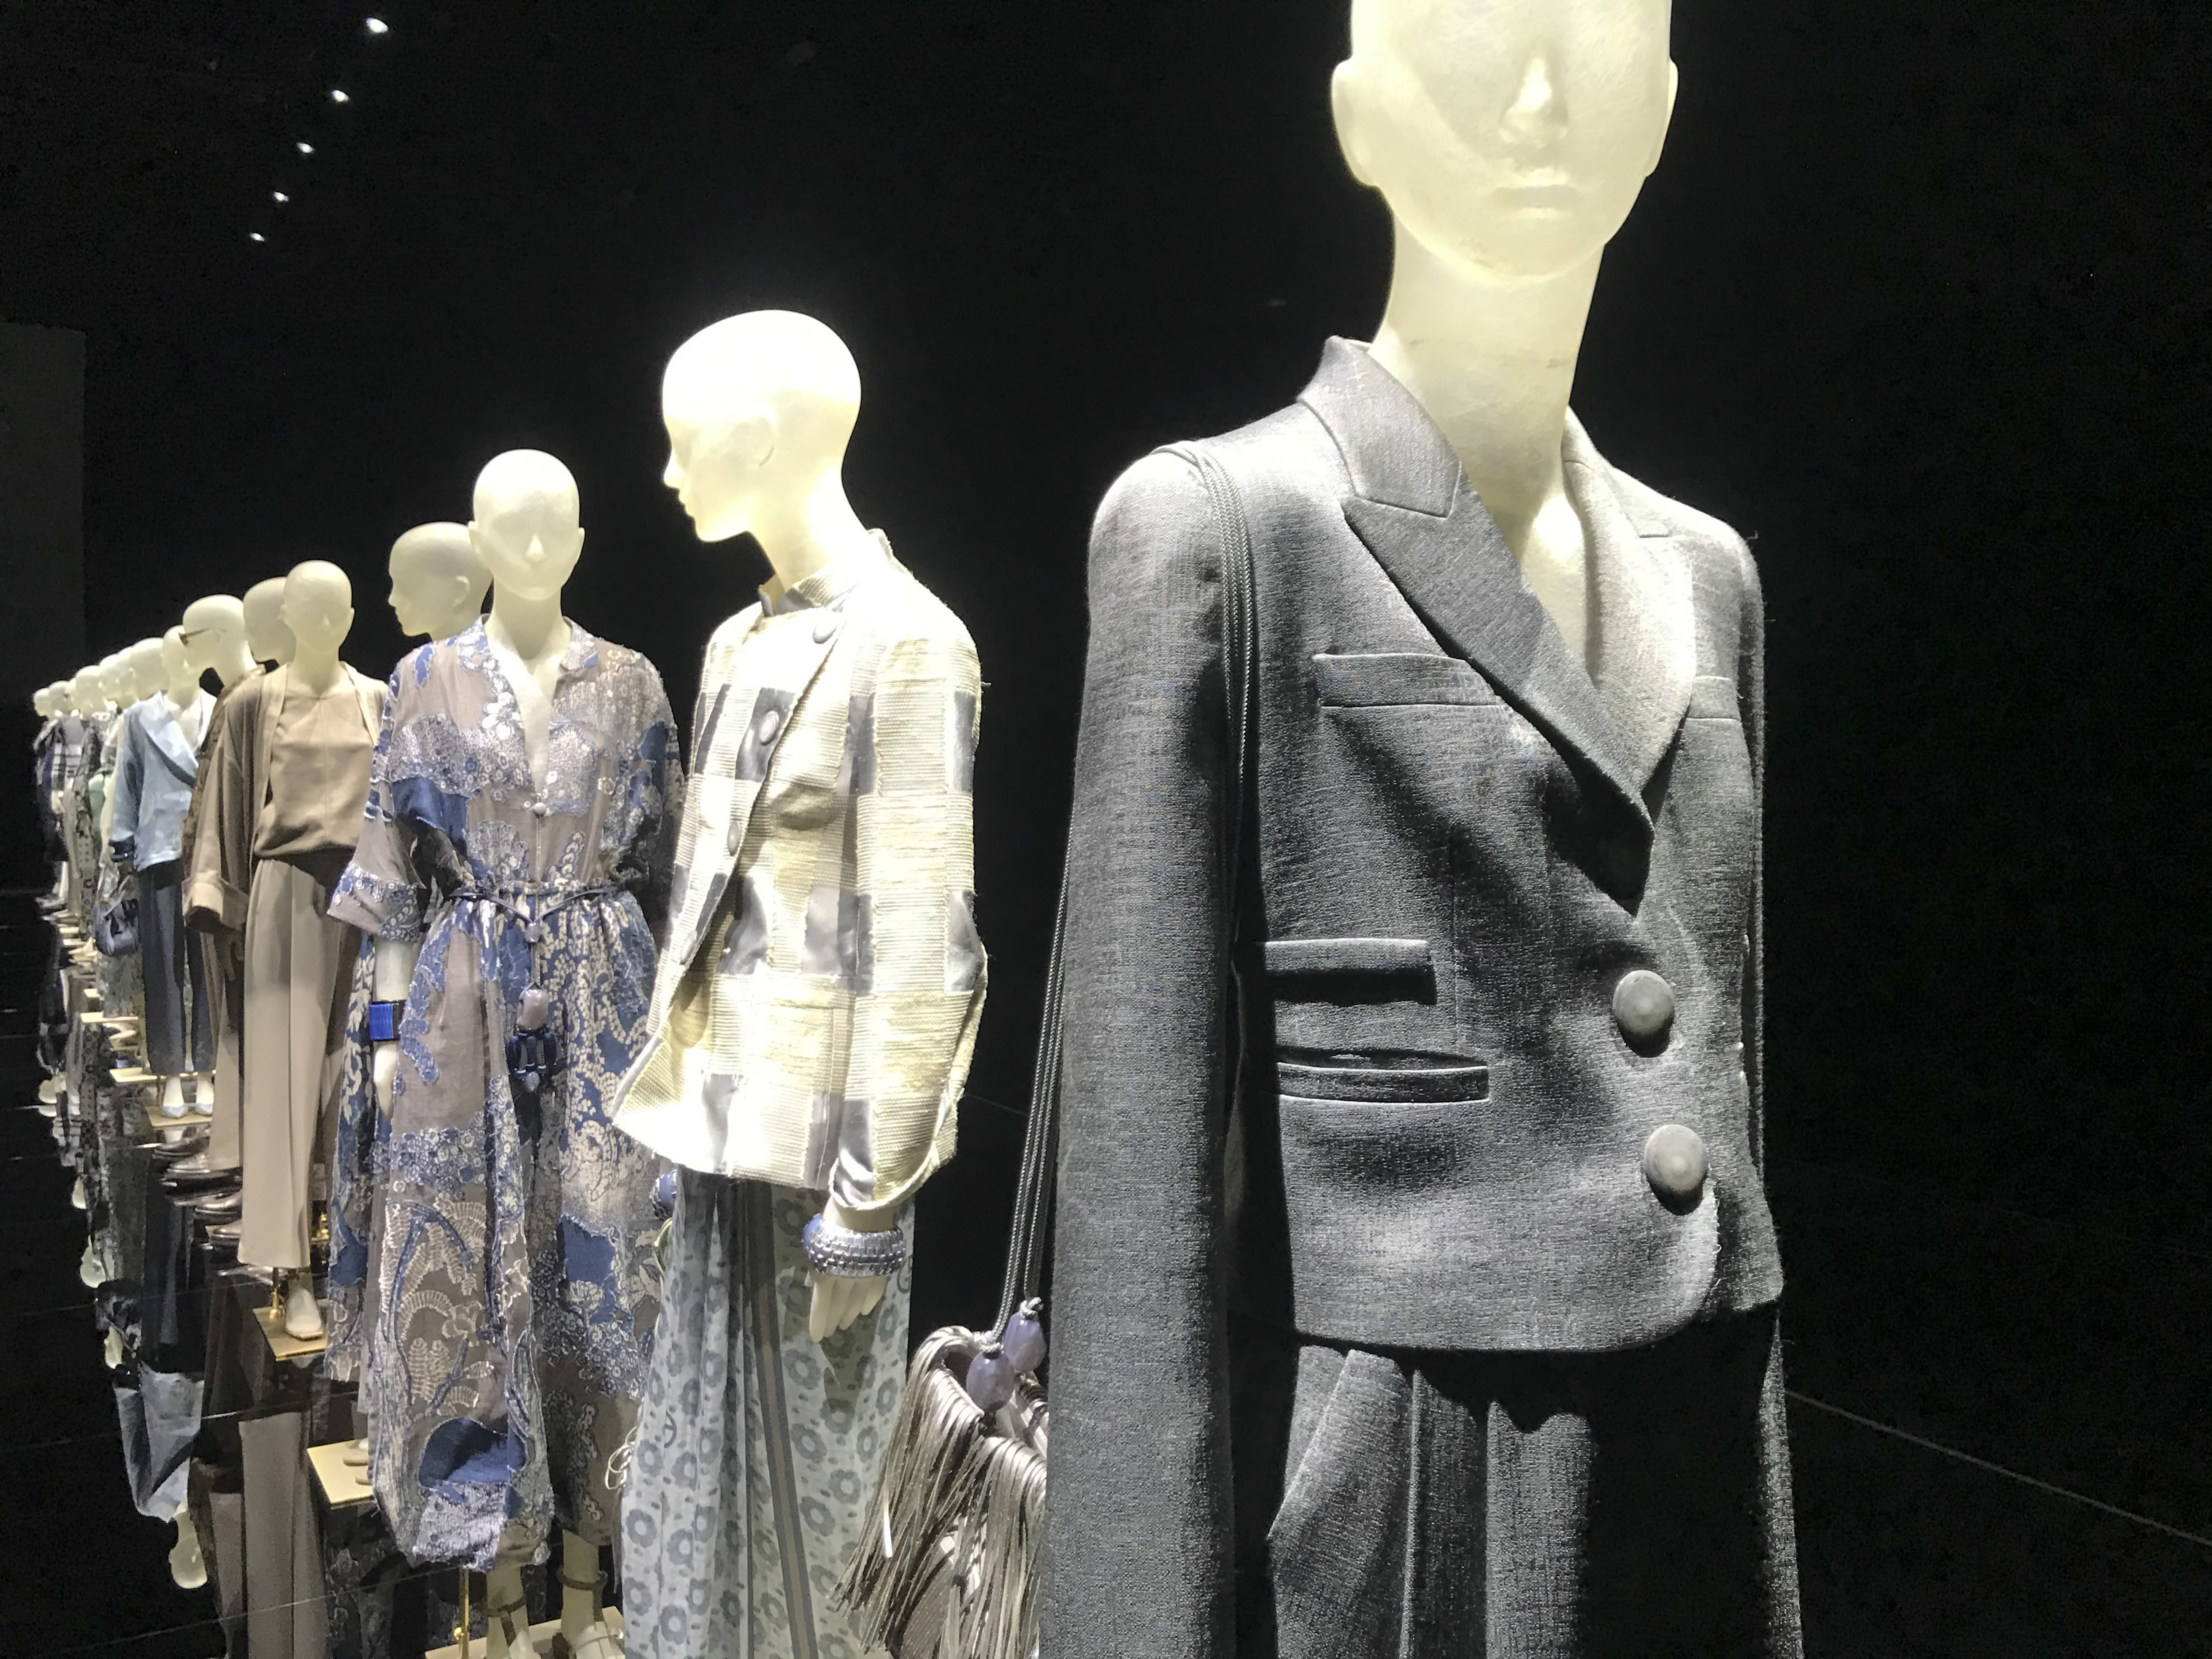 Creations displayed at a presentation as part of the Giorgio Armani 2021 women's spring-summer ready-to-wear collection during the fashion week in Milan, Italy, Saturday, Sept. 26, 2020. (AP Photo/Colleen Barry)